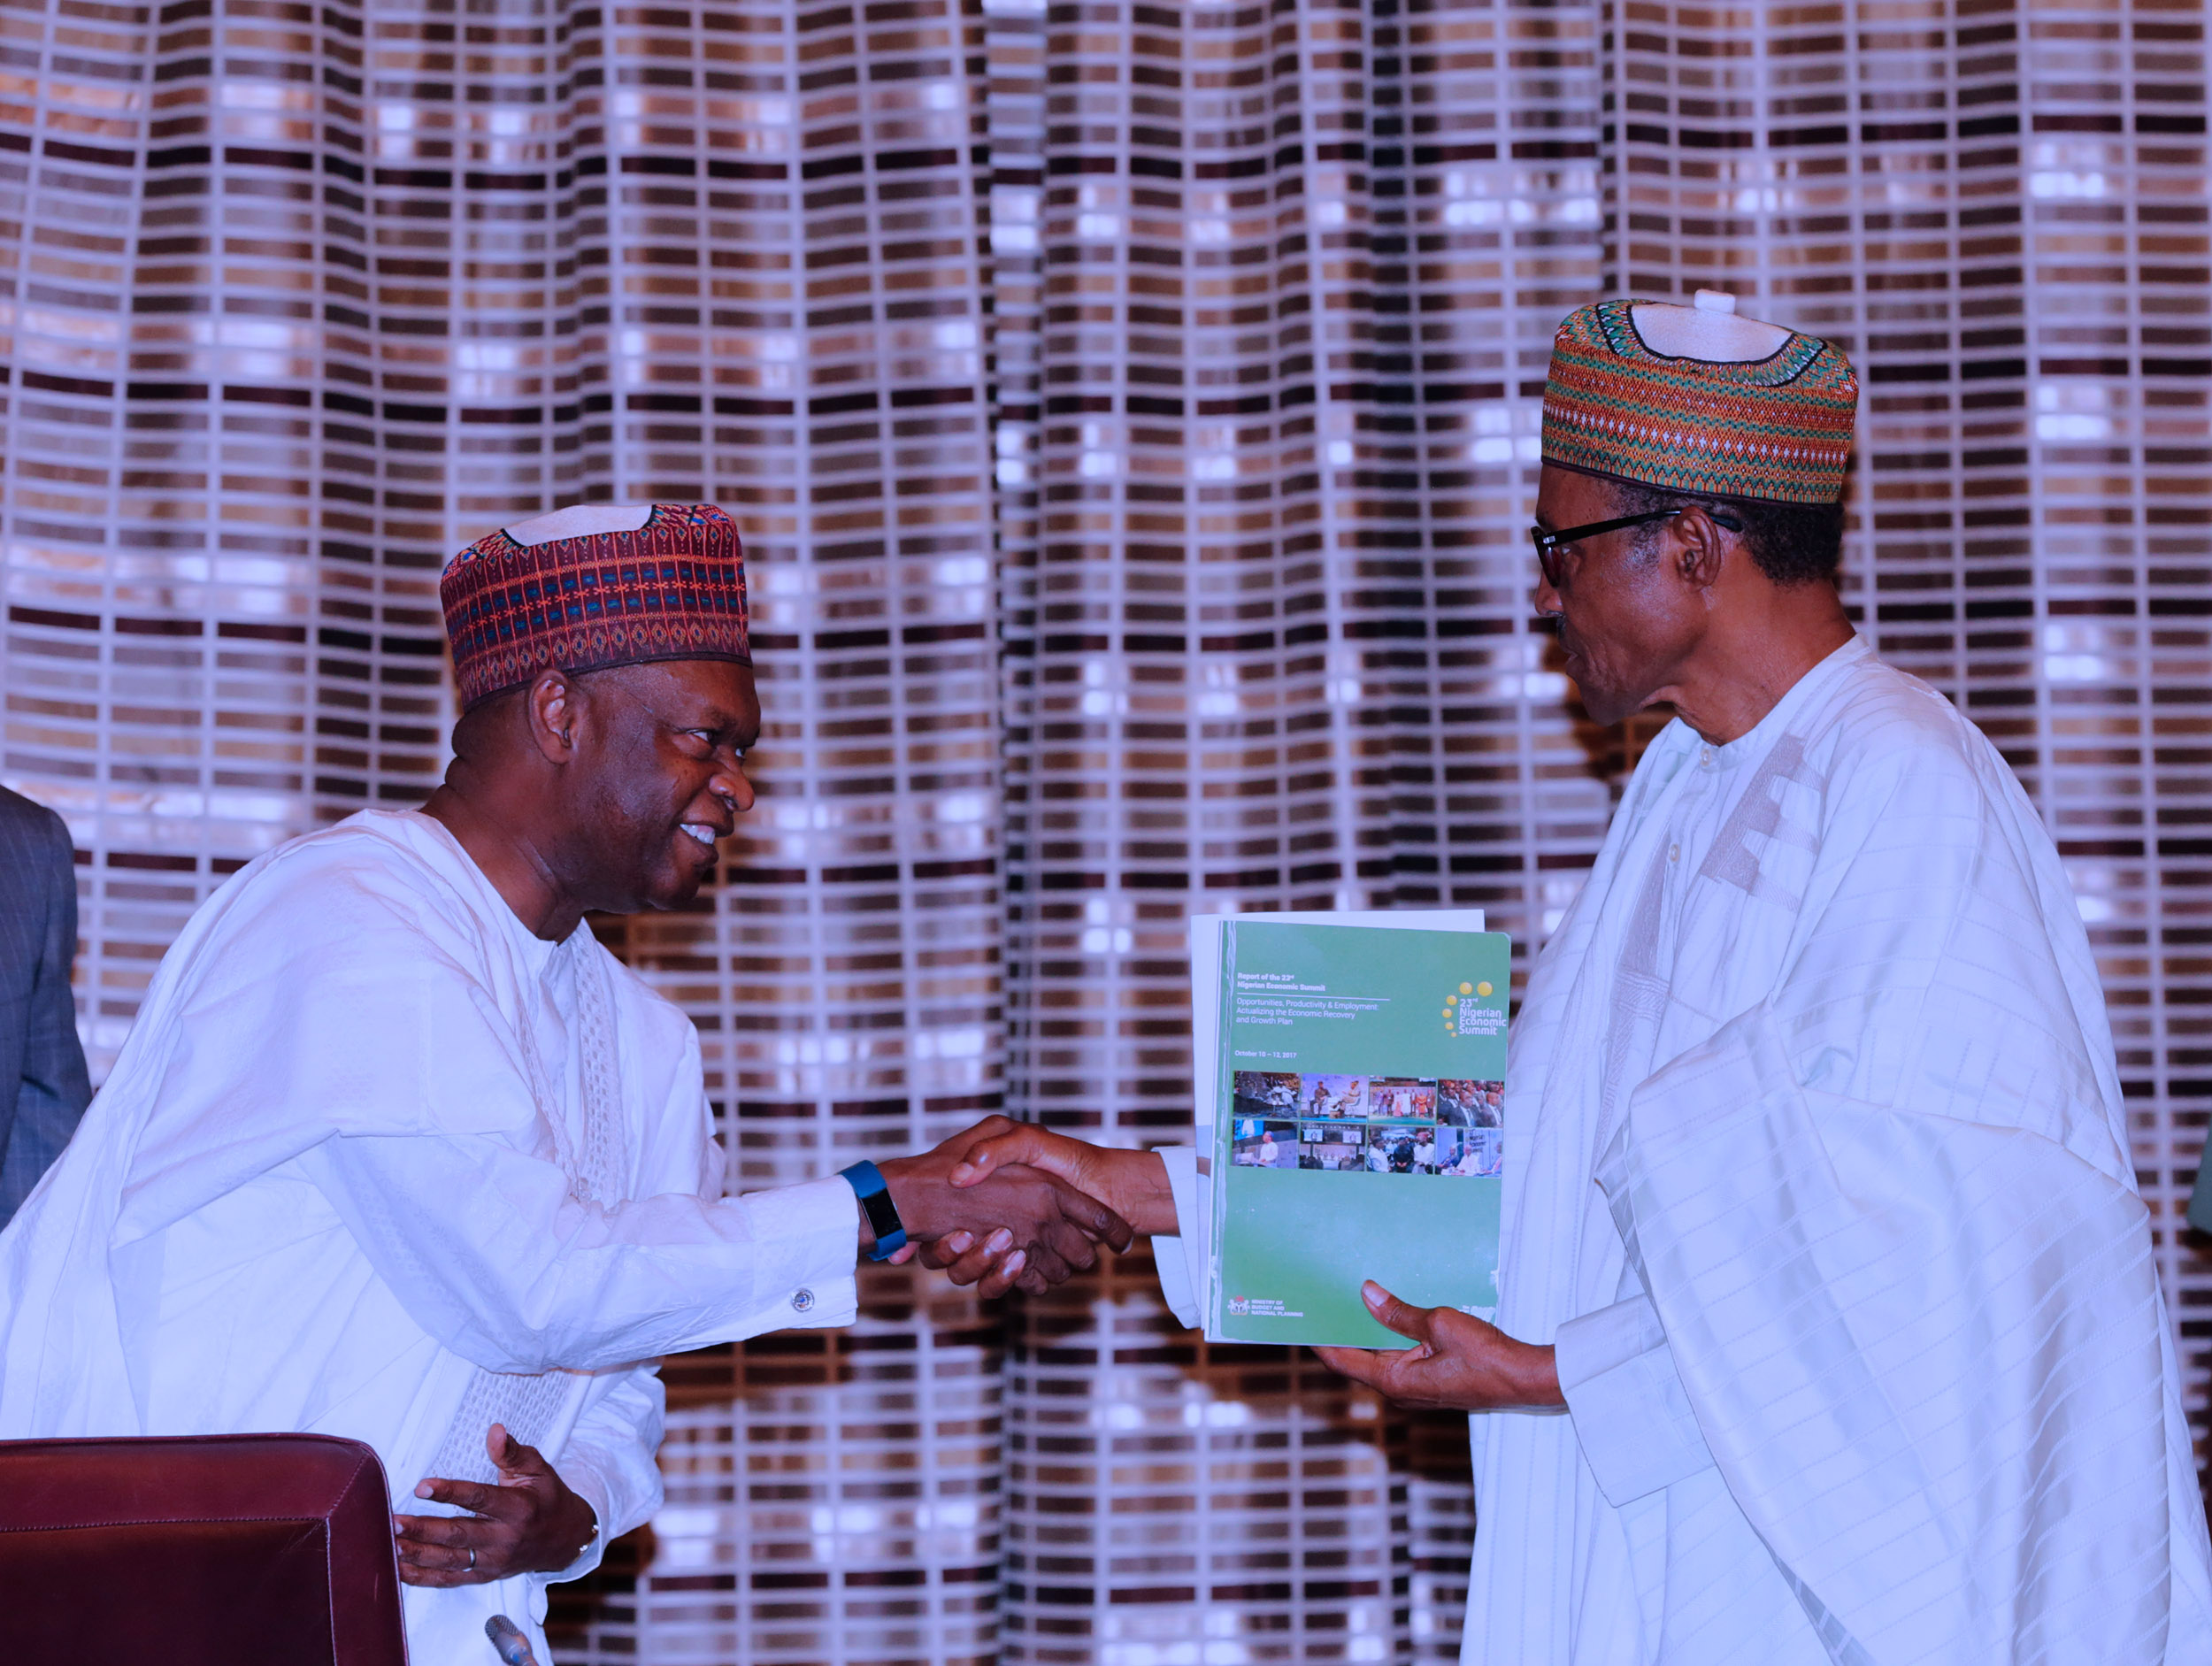 President Muhammadu Buhari receives NESG working document from Kyari Bukar, the Chairman Nigerian Economic Summit Group, NESG, during a courtesy visit by the Board and Management of the Nigeria Economic Summit Group (NESG) at the State House in Abuja. PHOTO; SUNDAY AGHAEZE. JAN 22 2018